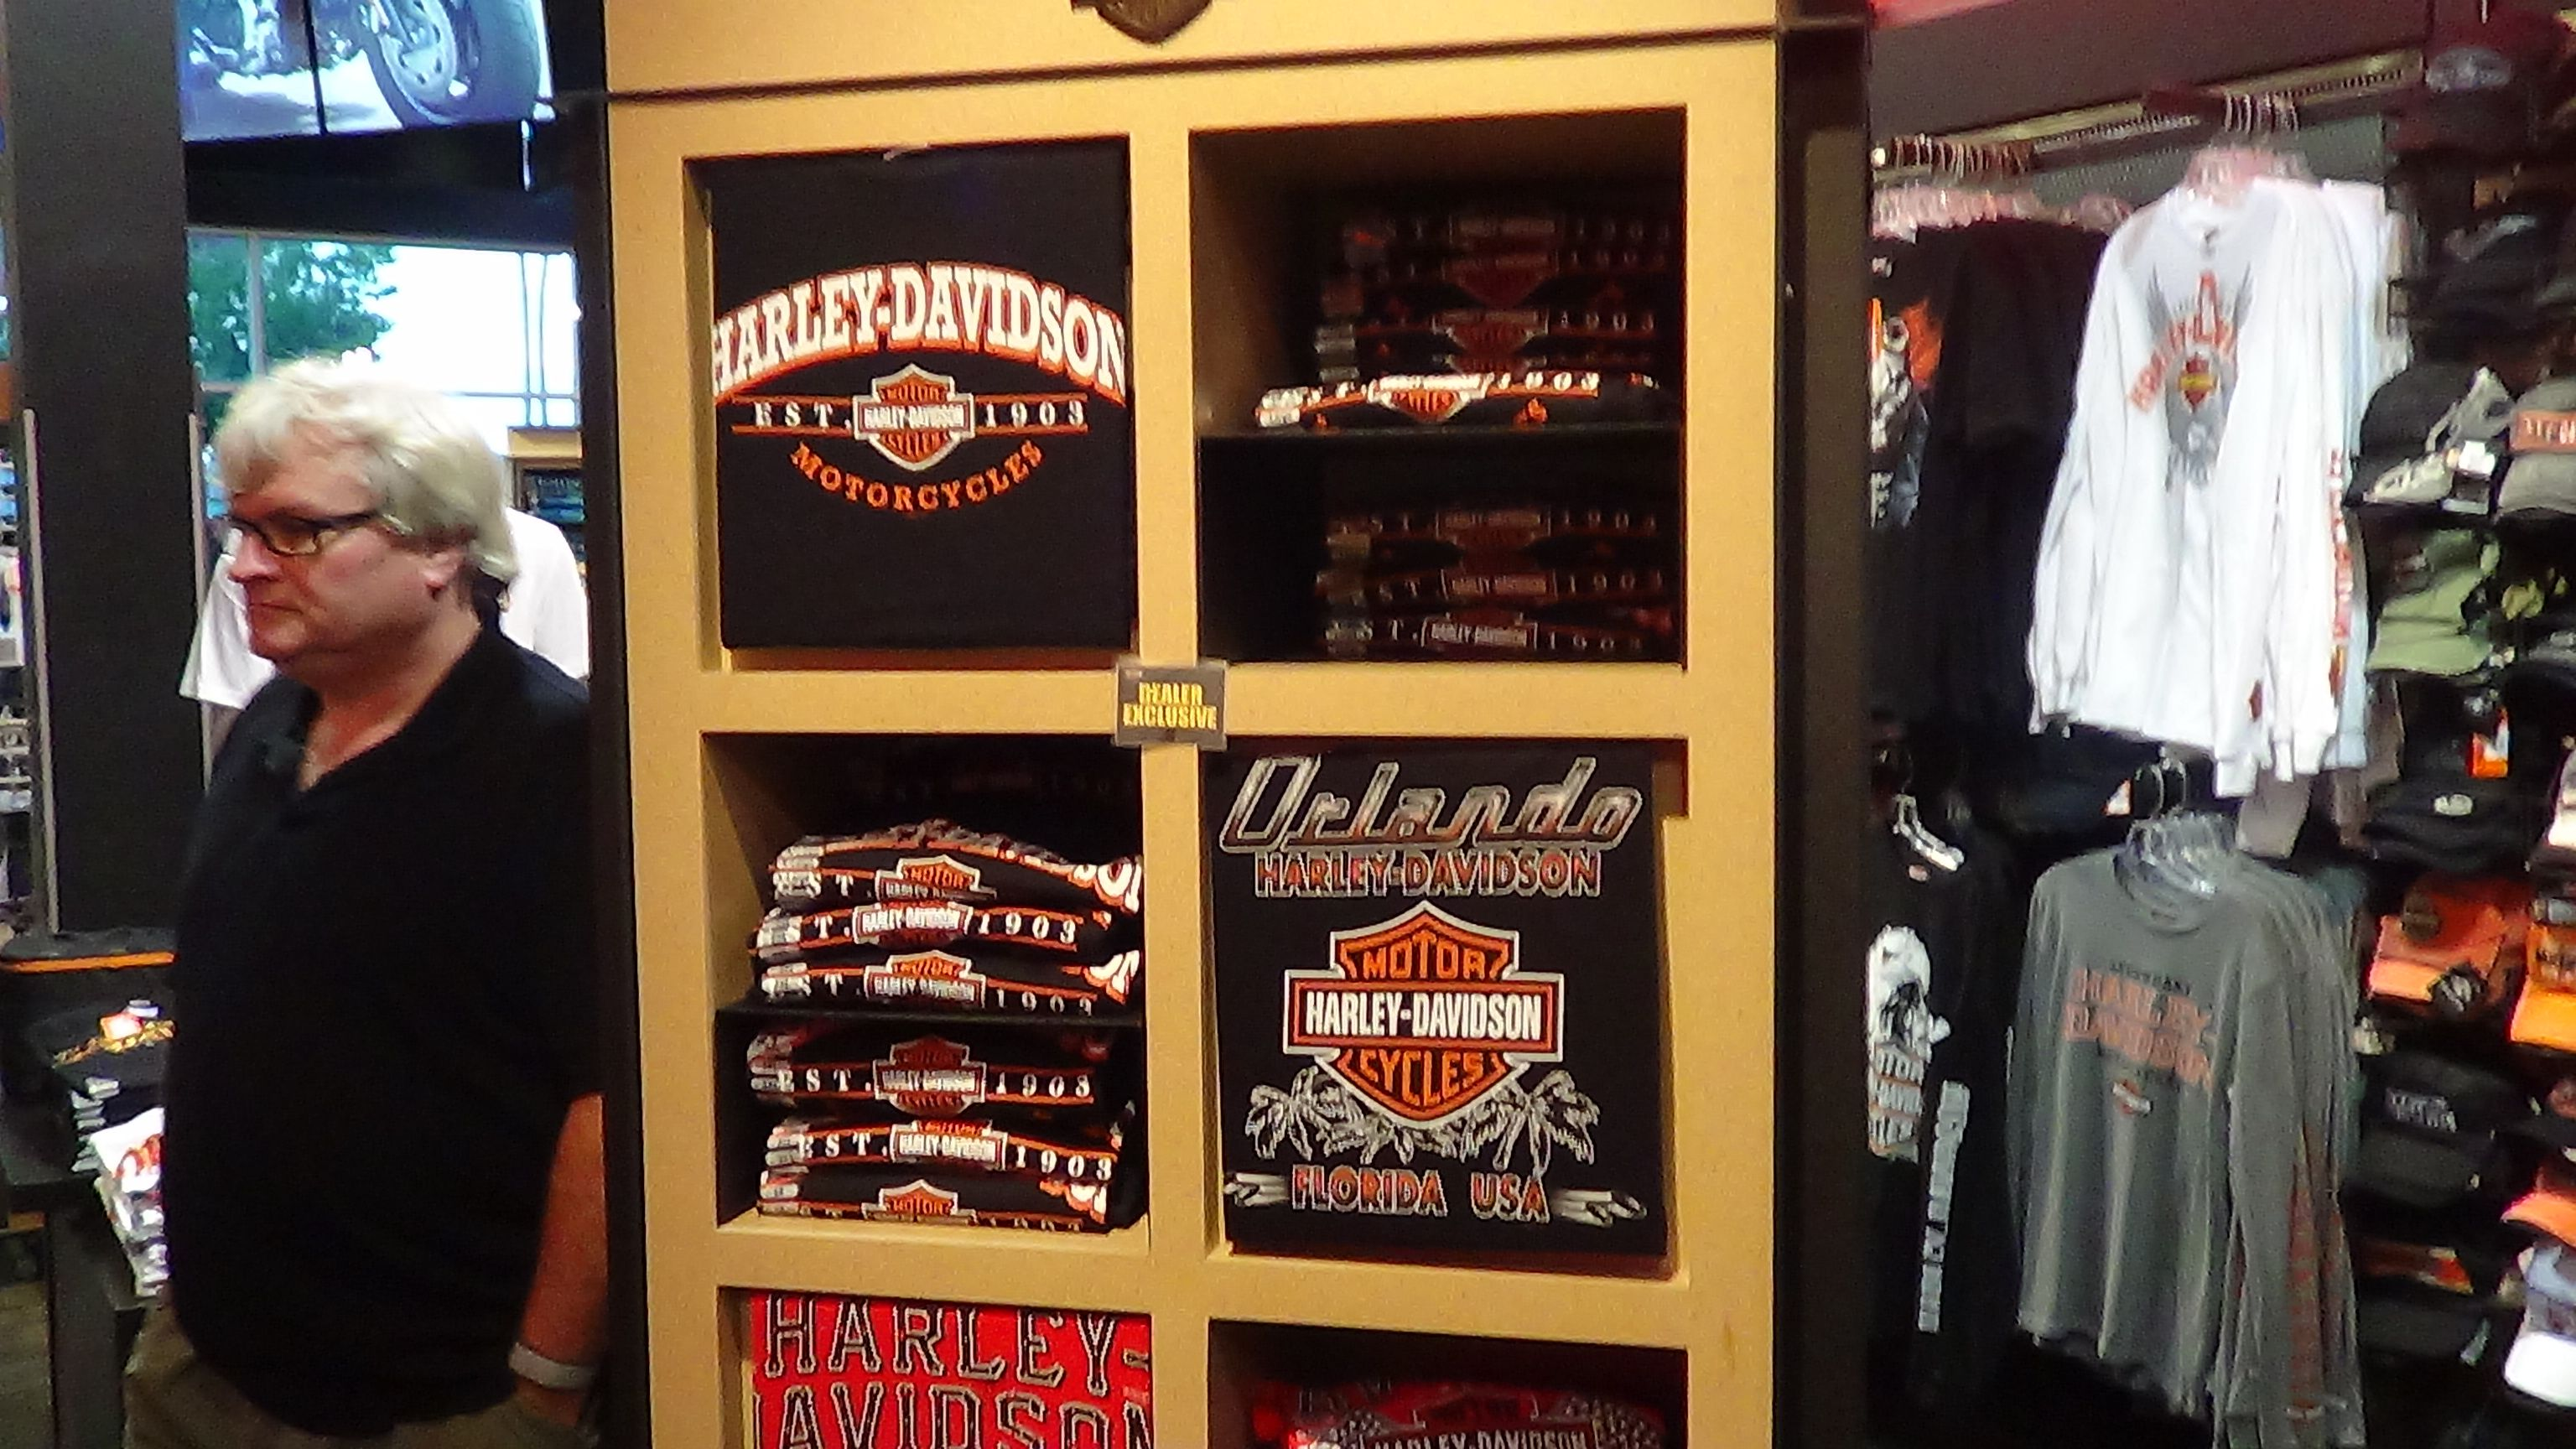 Harleydavidson Downtowndisney Show Off Your Love Of Harley Davidson And Orlando The Downtown Disney Harley David Downtown Disney Disney Shop Disney Springs